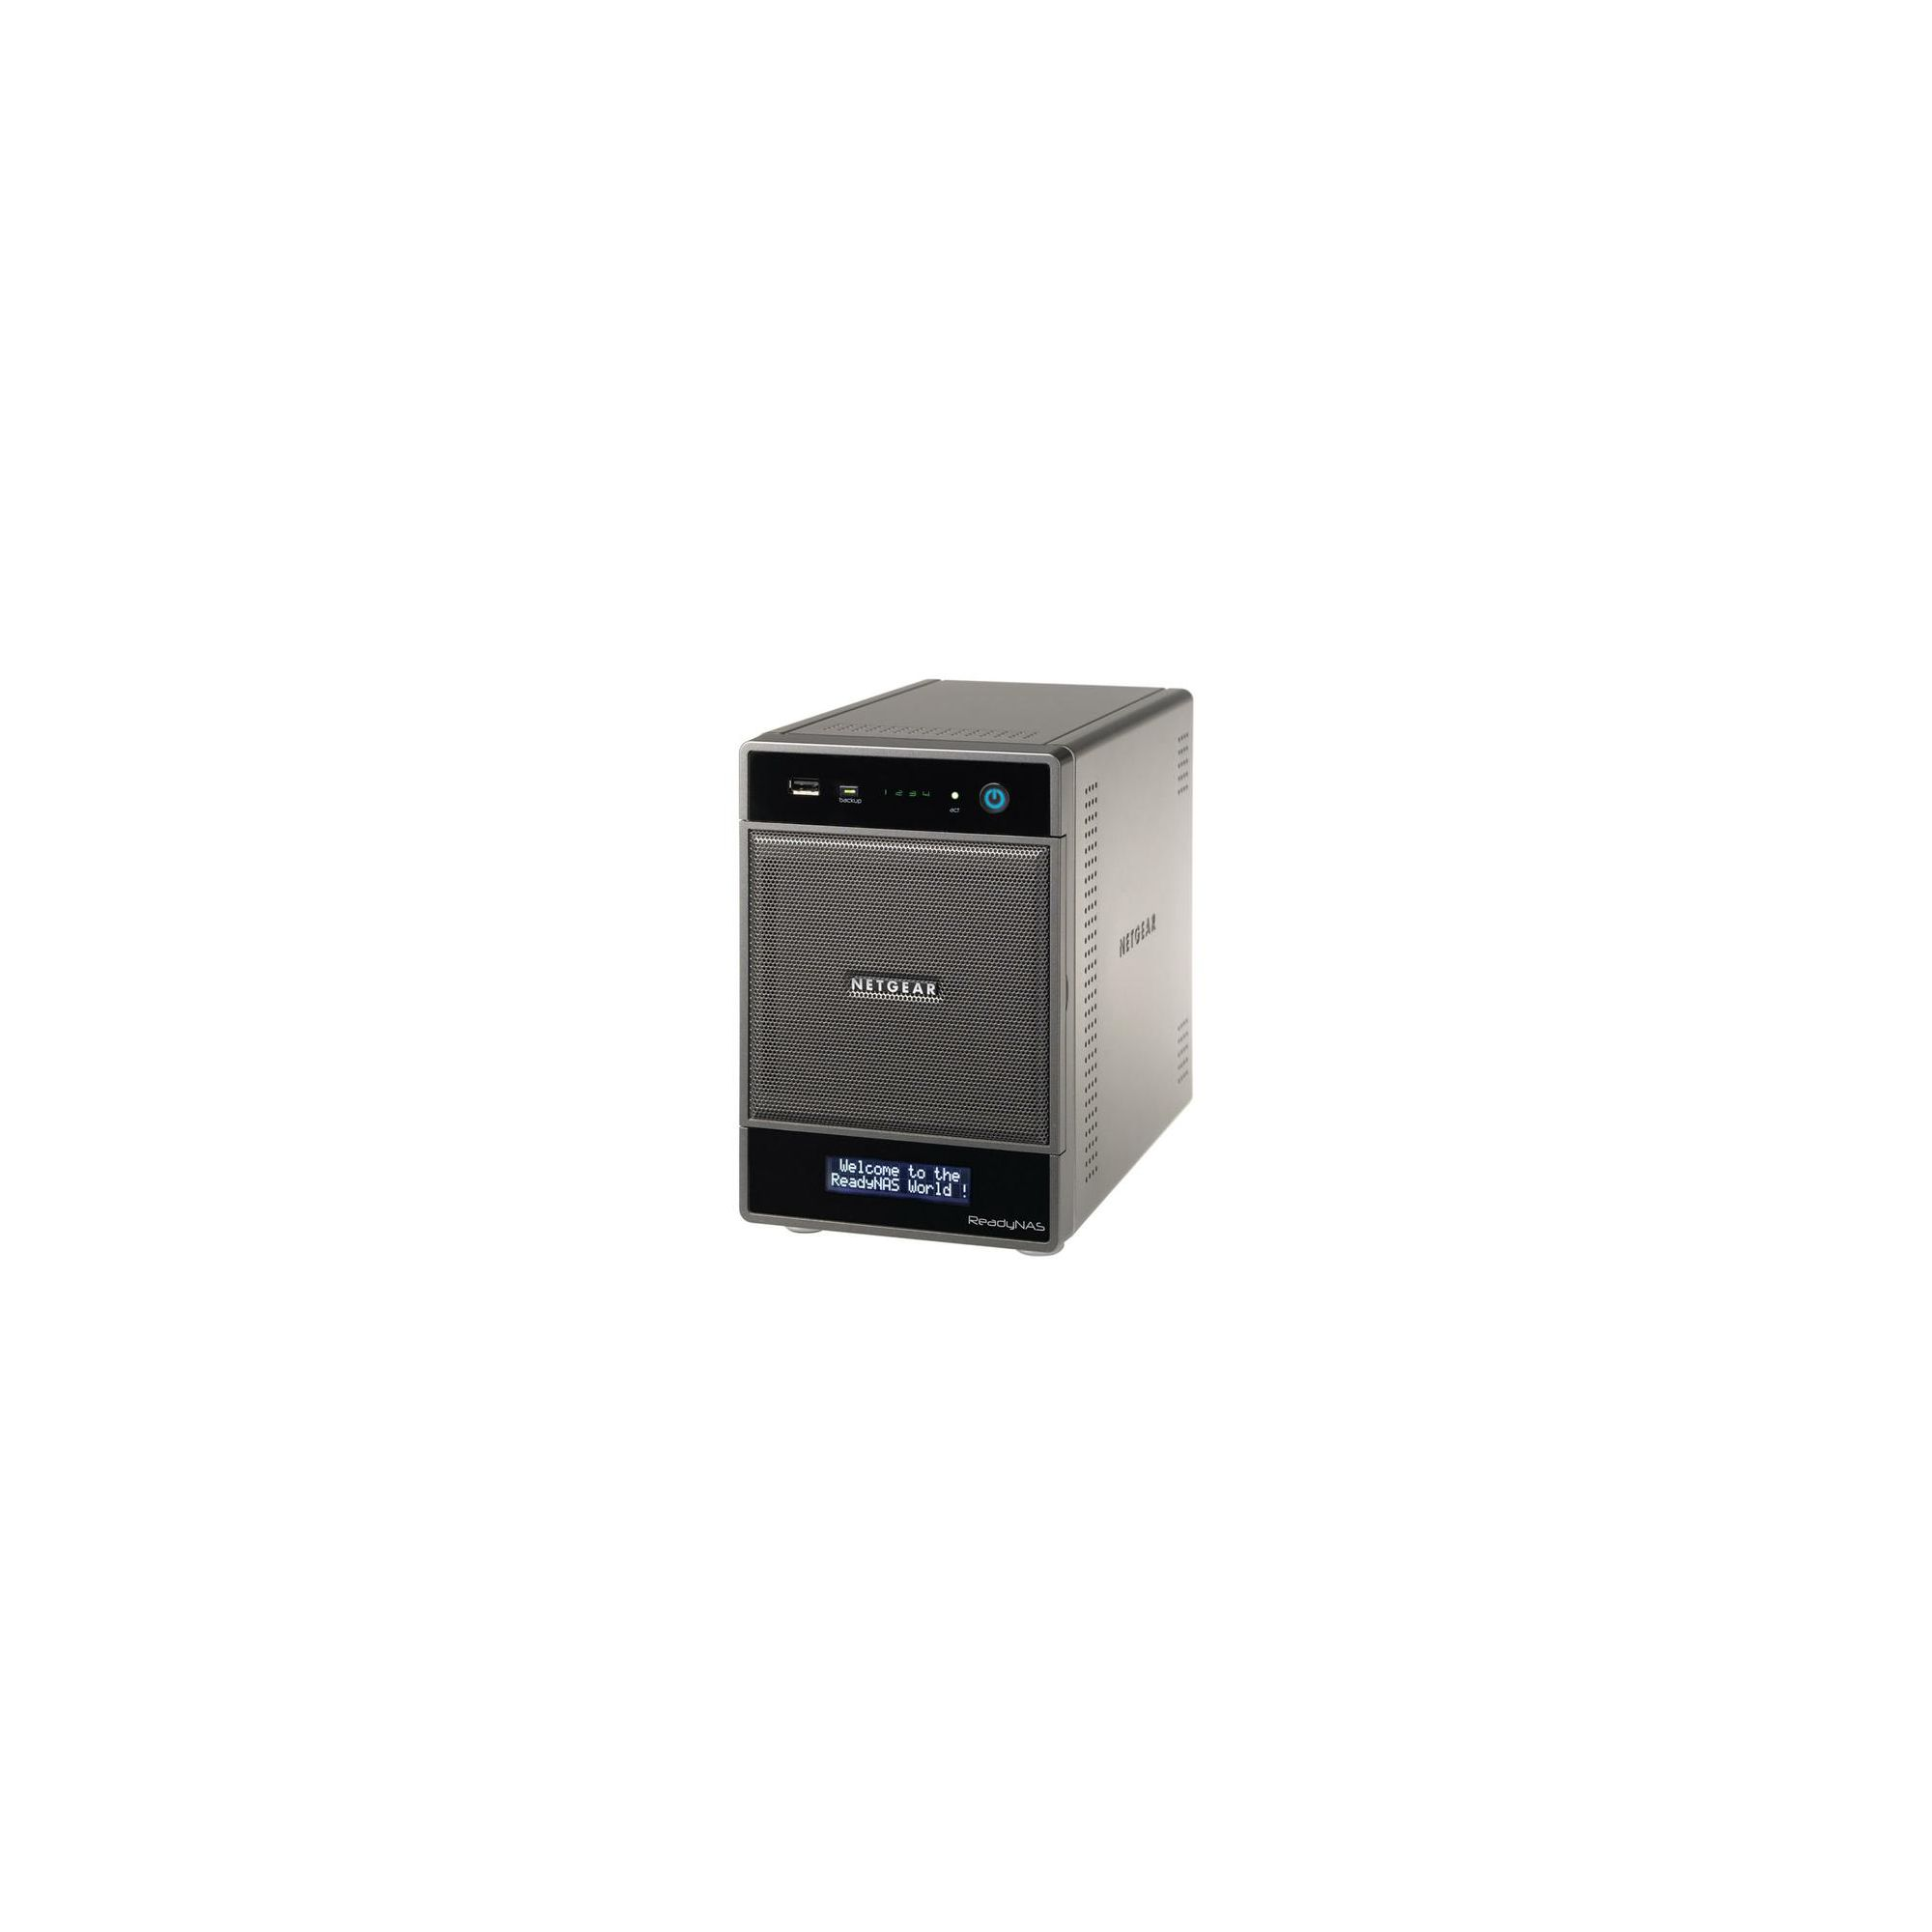 Netgear RNDU4220-100UKS ReadyNAS Ultra 4 - MM Desktop Storage System 4TB (2x2TB HDD) at Tesco Direct